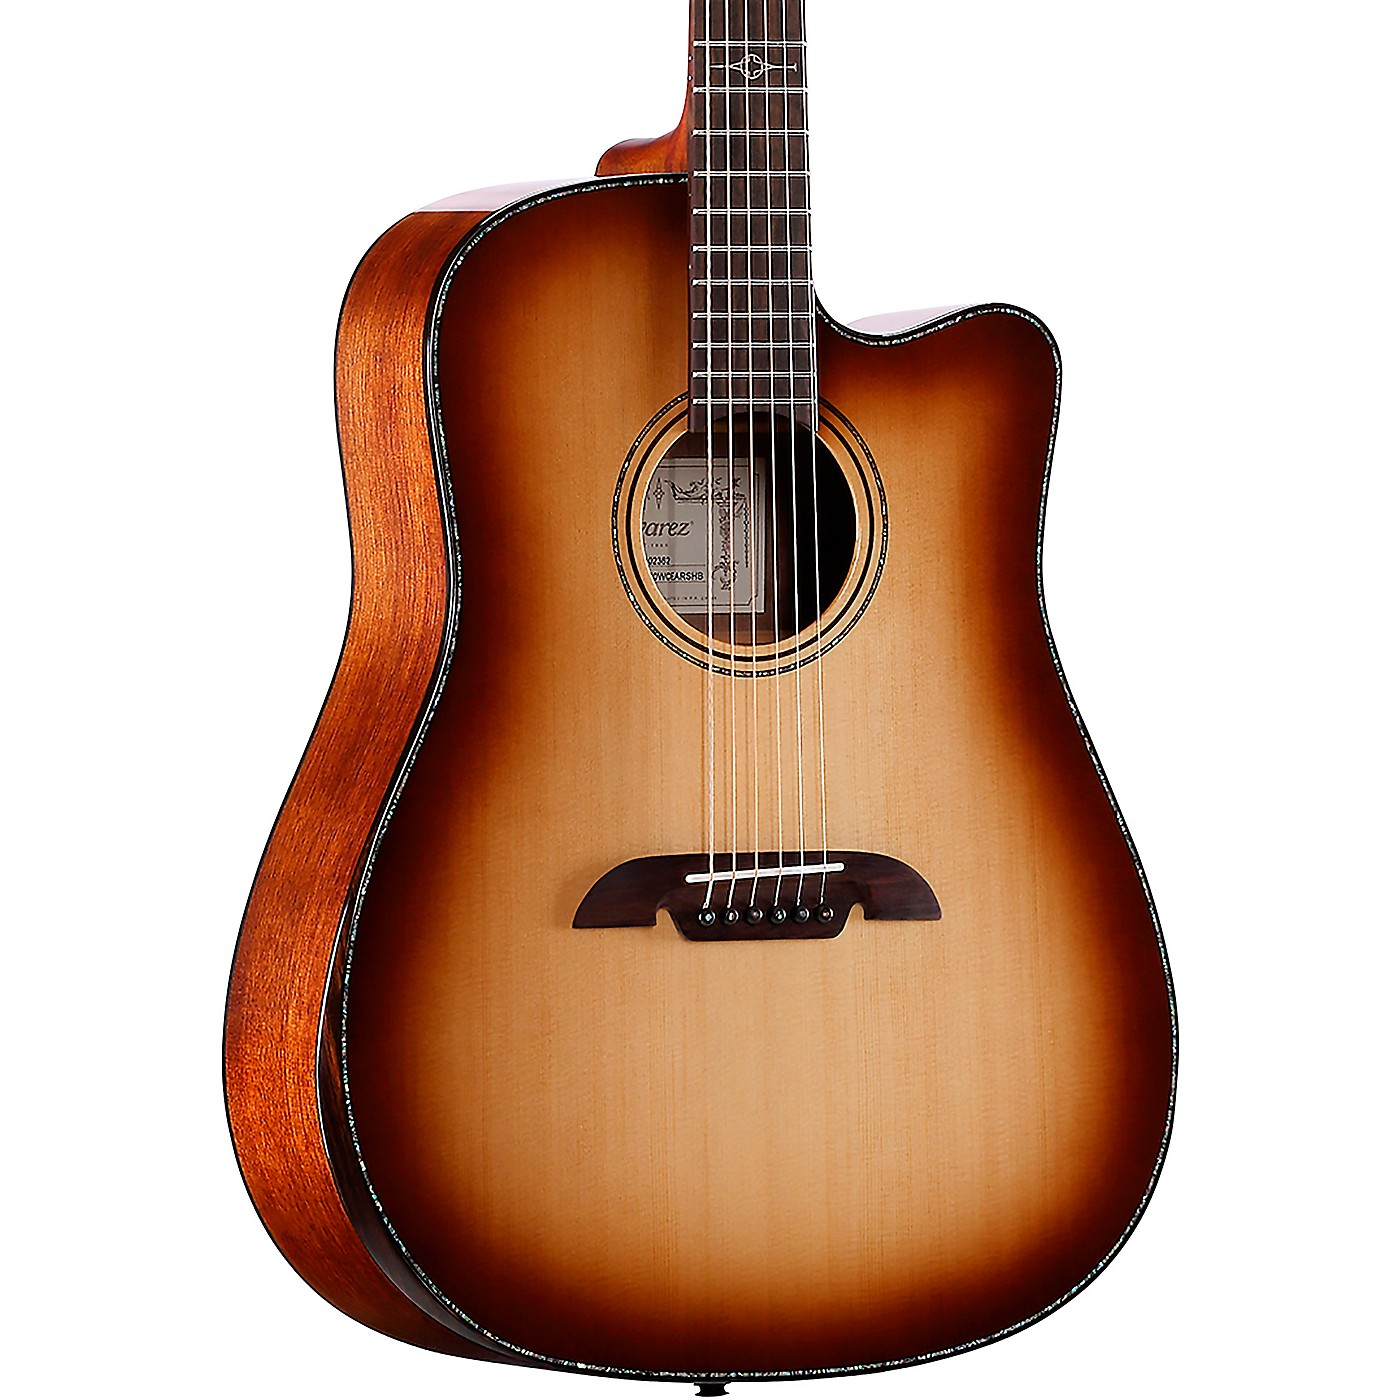 Alvarez MDA70WCEAR Masterworks Dreadnought Acoustic-Electric Guitar thumbnail